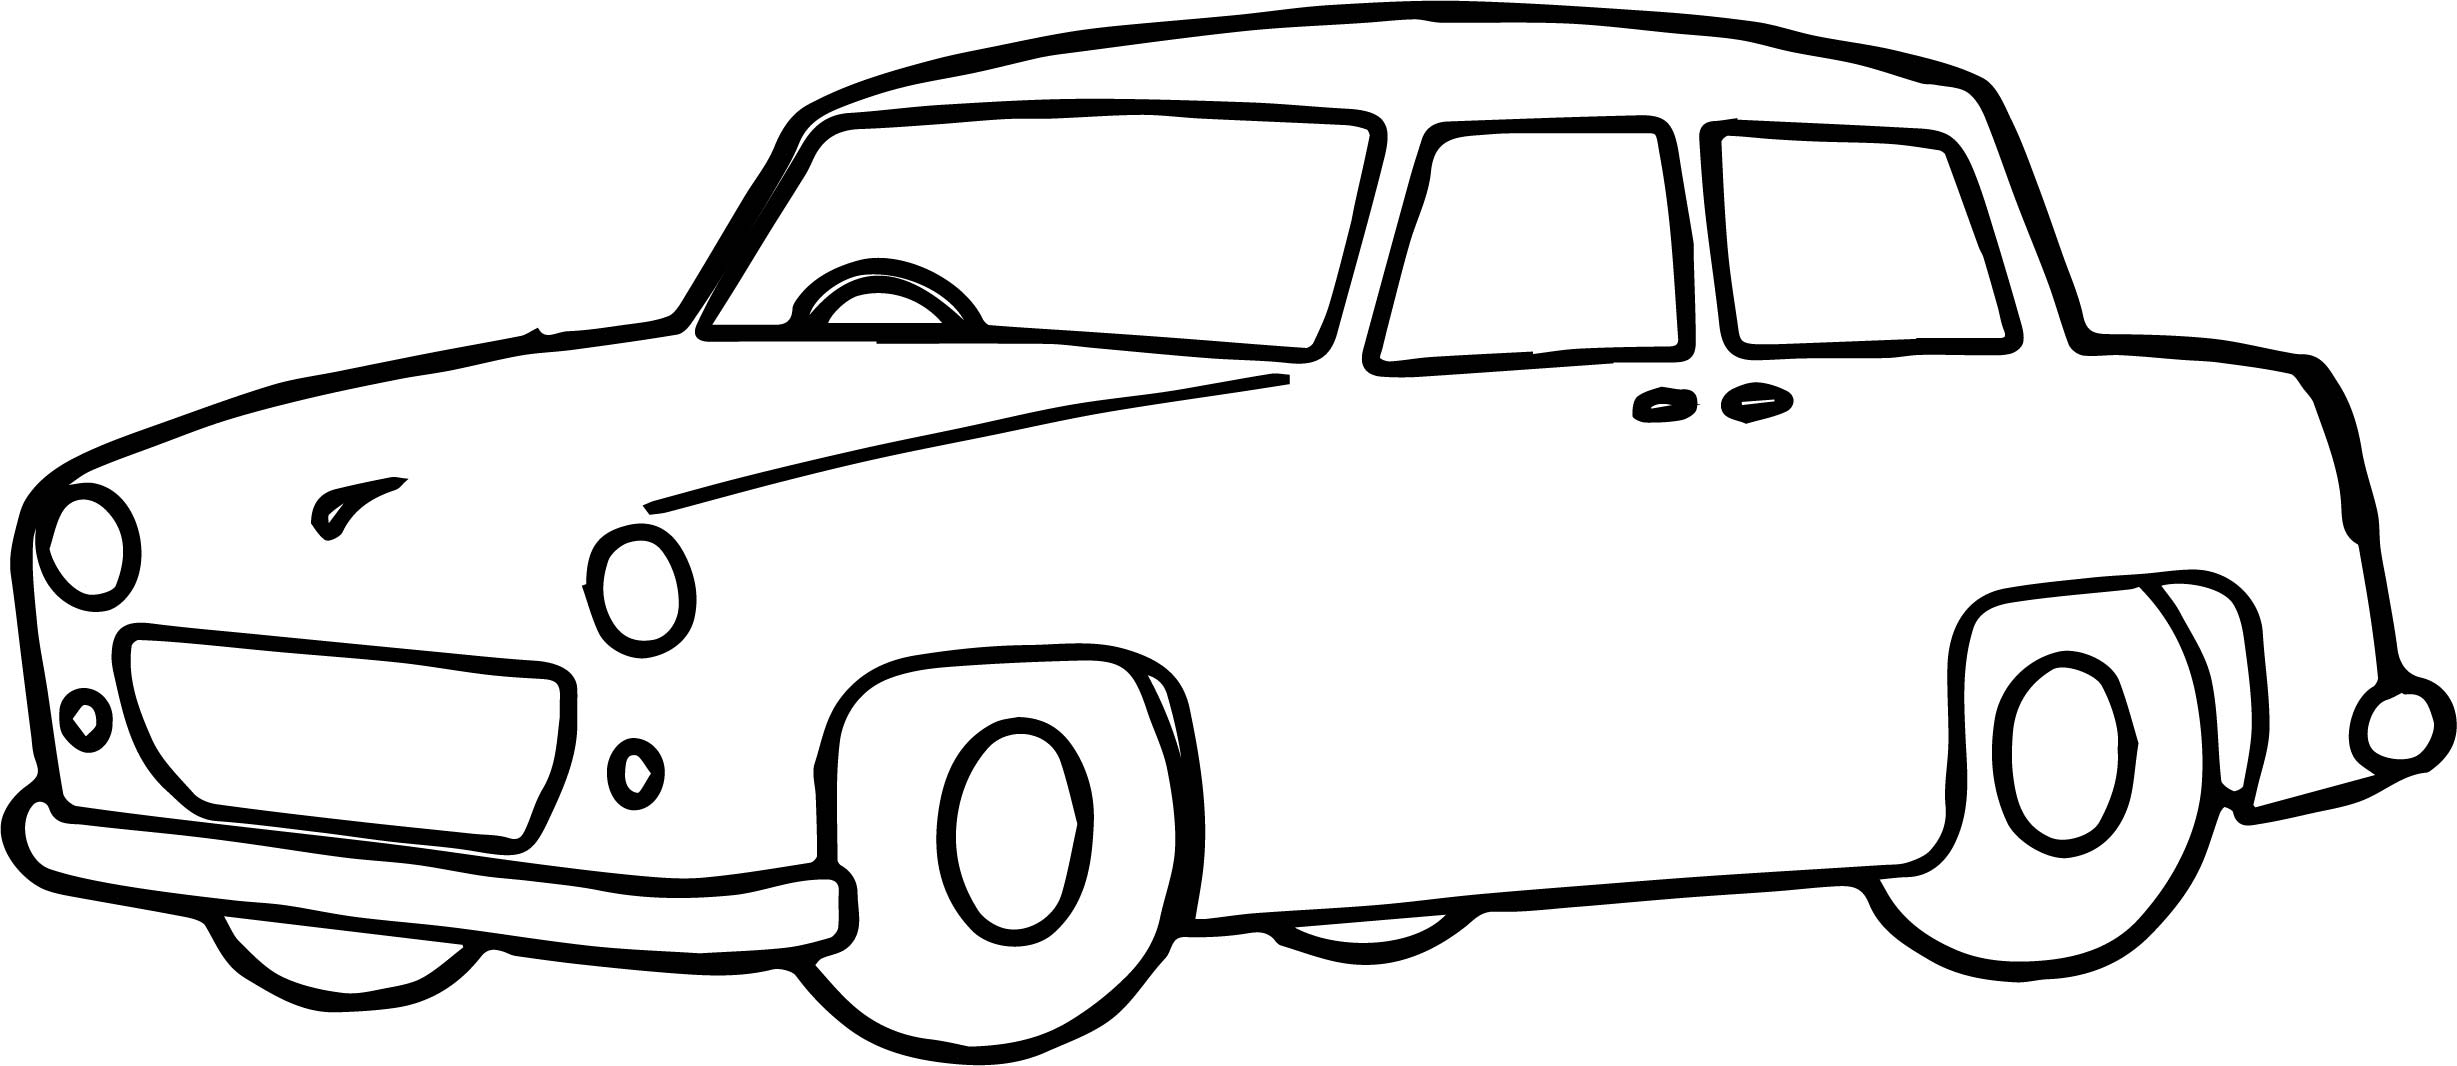 Toy Car Basic Coloring Page Wecoloringpage